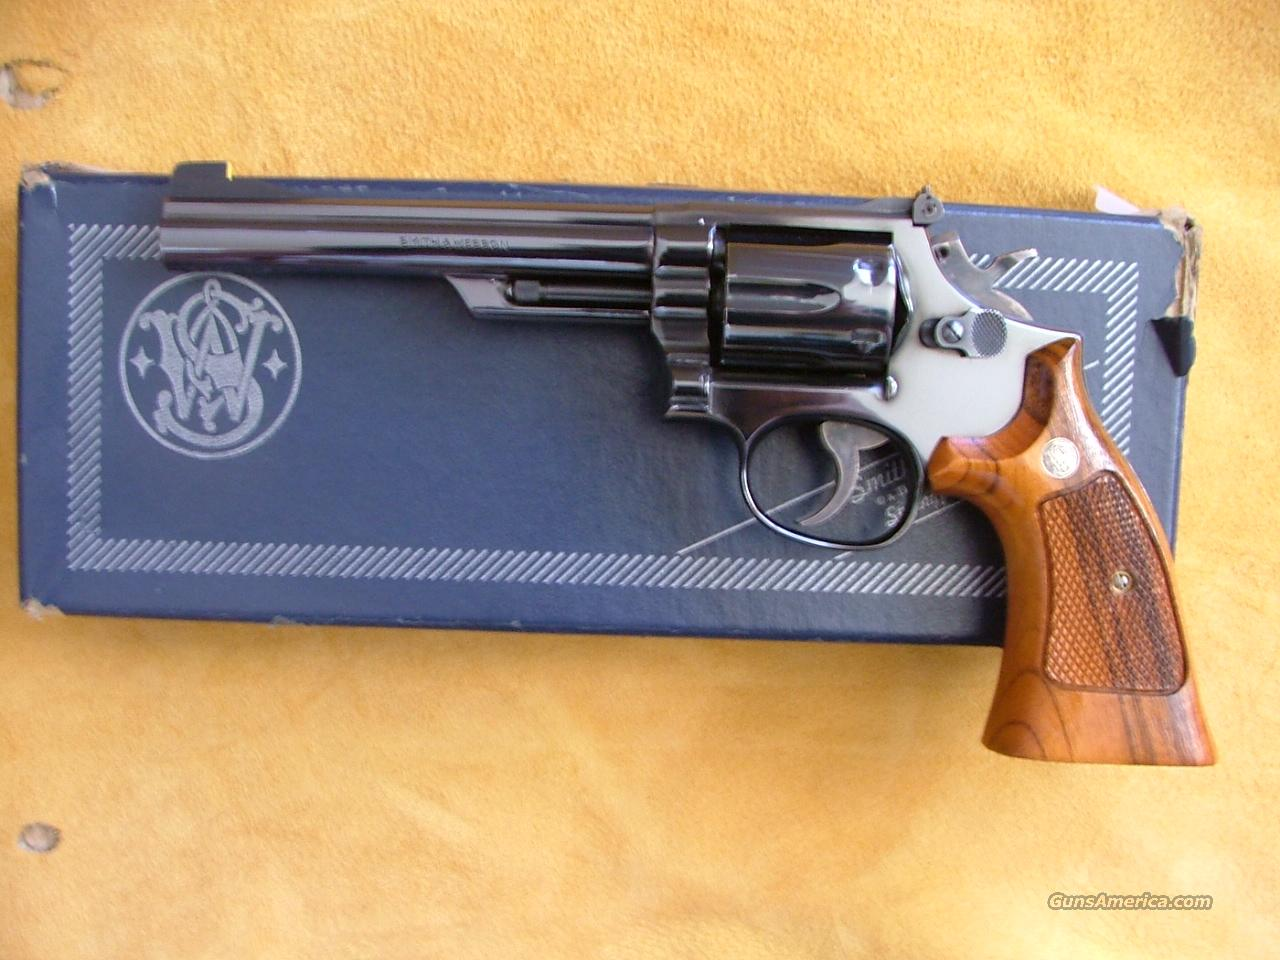 smith wesson model 19-4  357 mag   Guns > Pistols > Smith & Wesson Revolvers > Full Frame Revolver